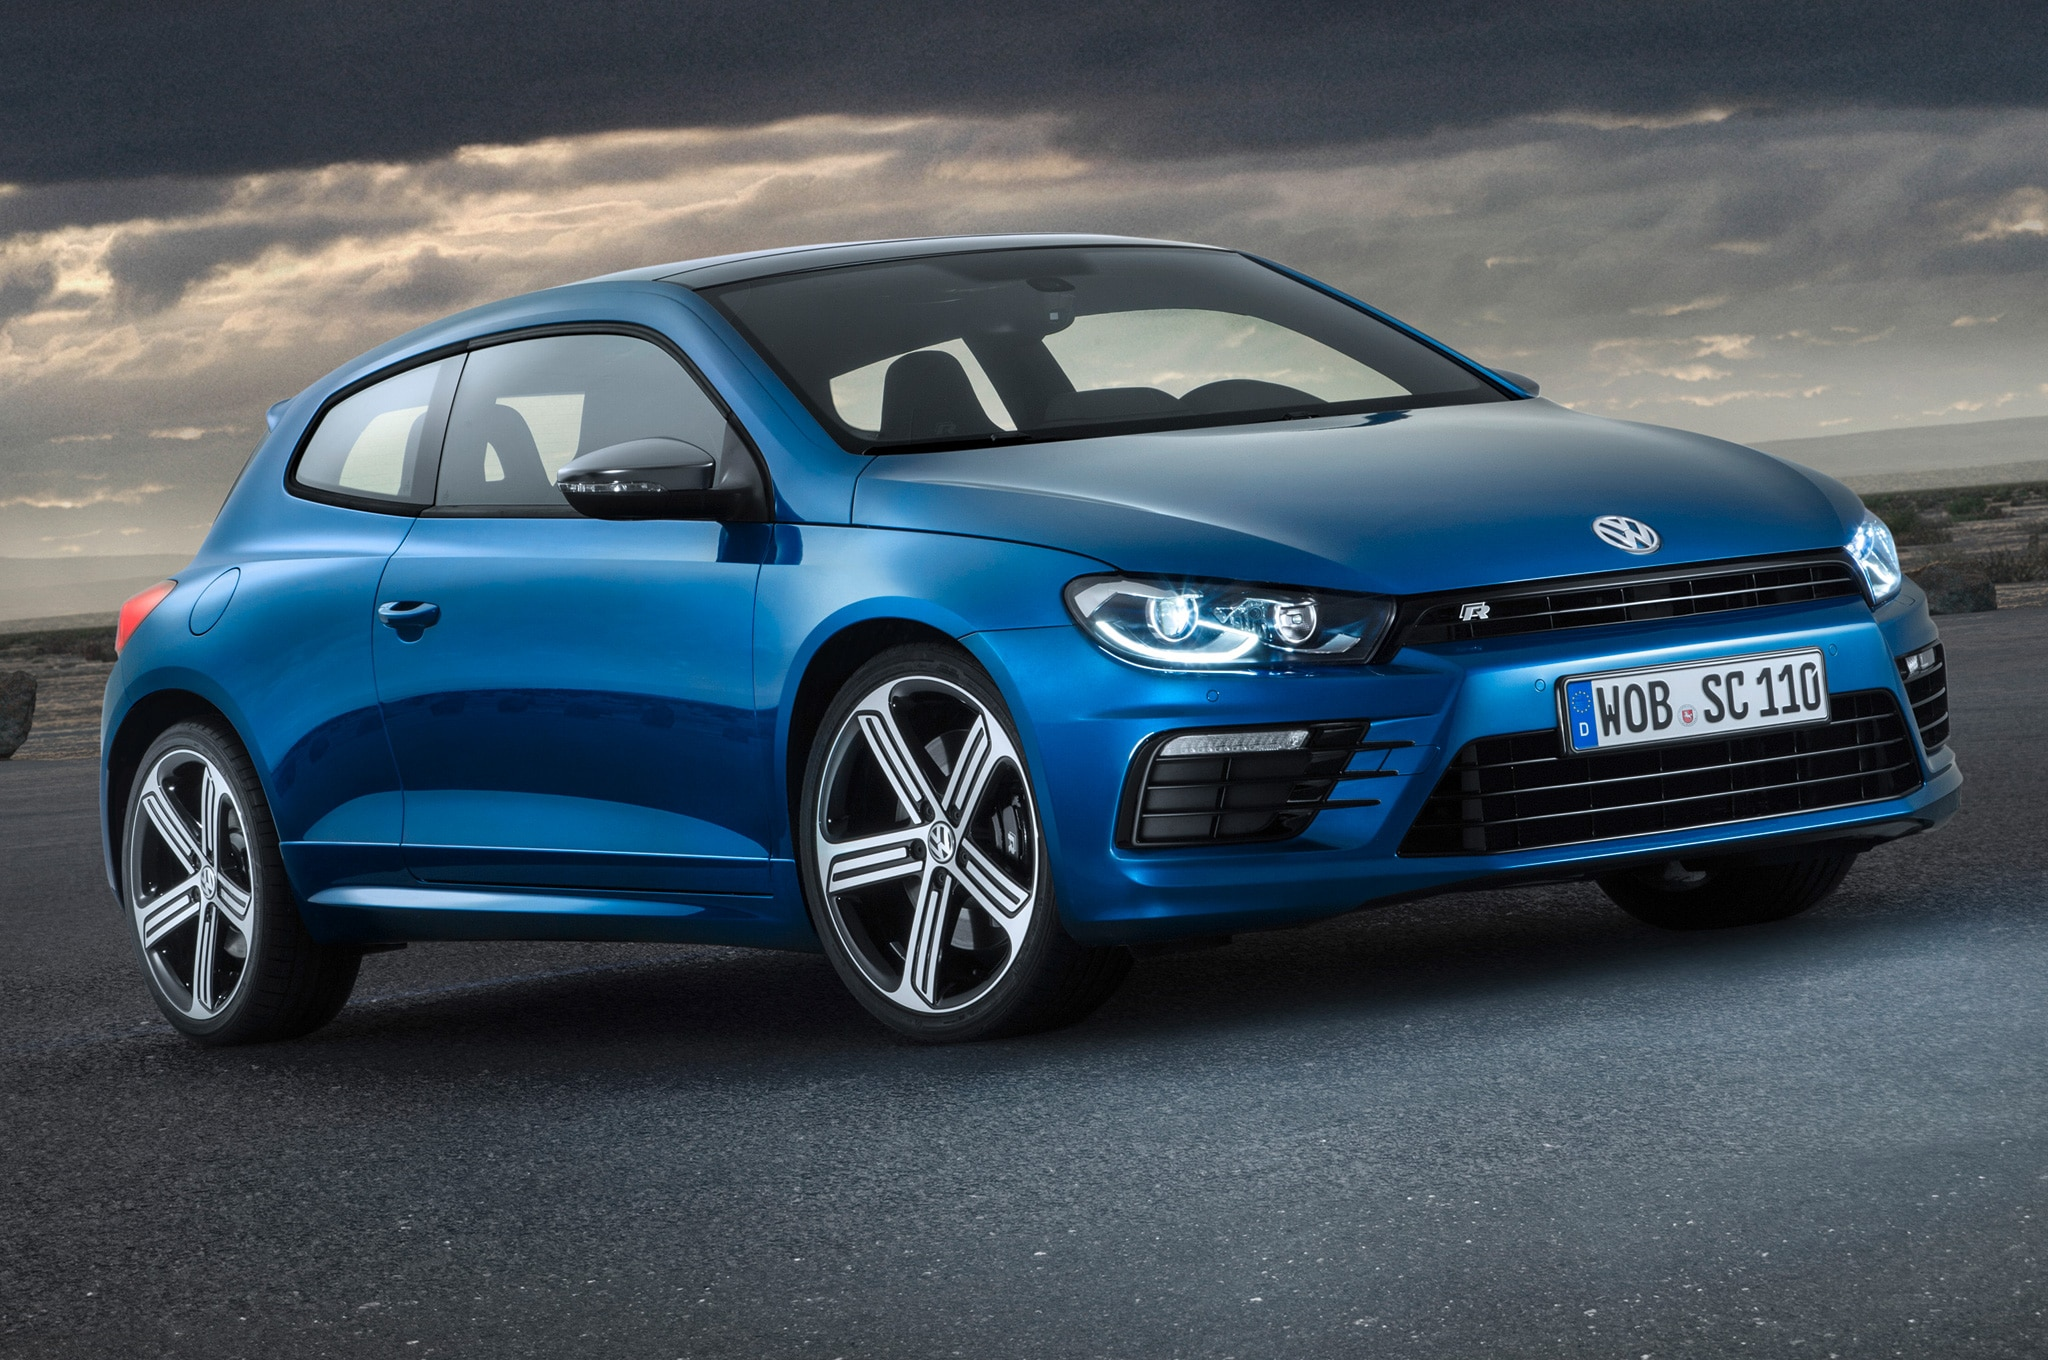 Volkswagen scirocco for sale in usa - Show More